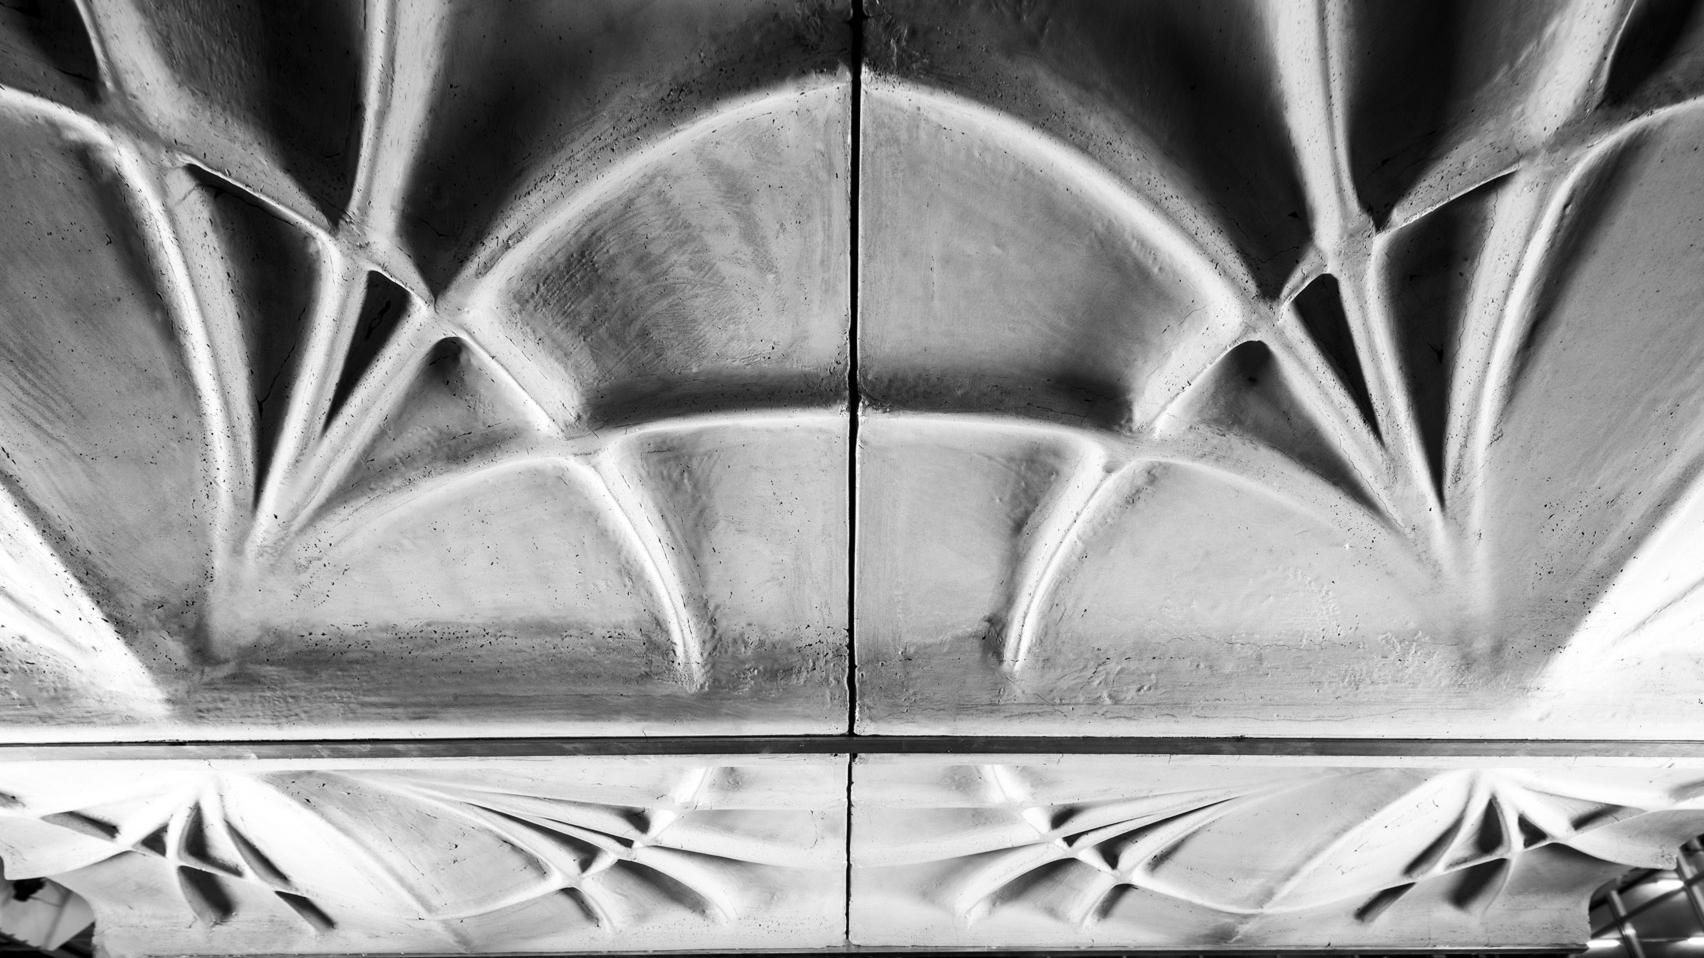 ETH Zurich combines 3D printing and casting to make more efficient concrete structures